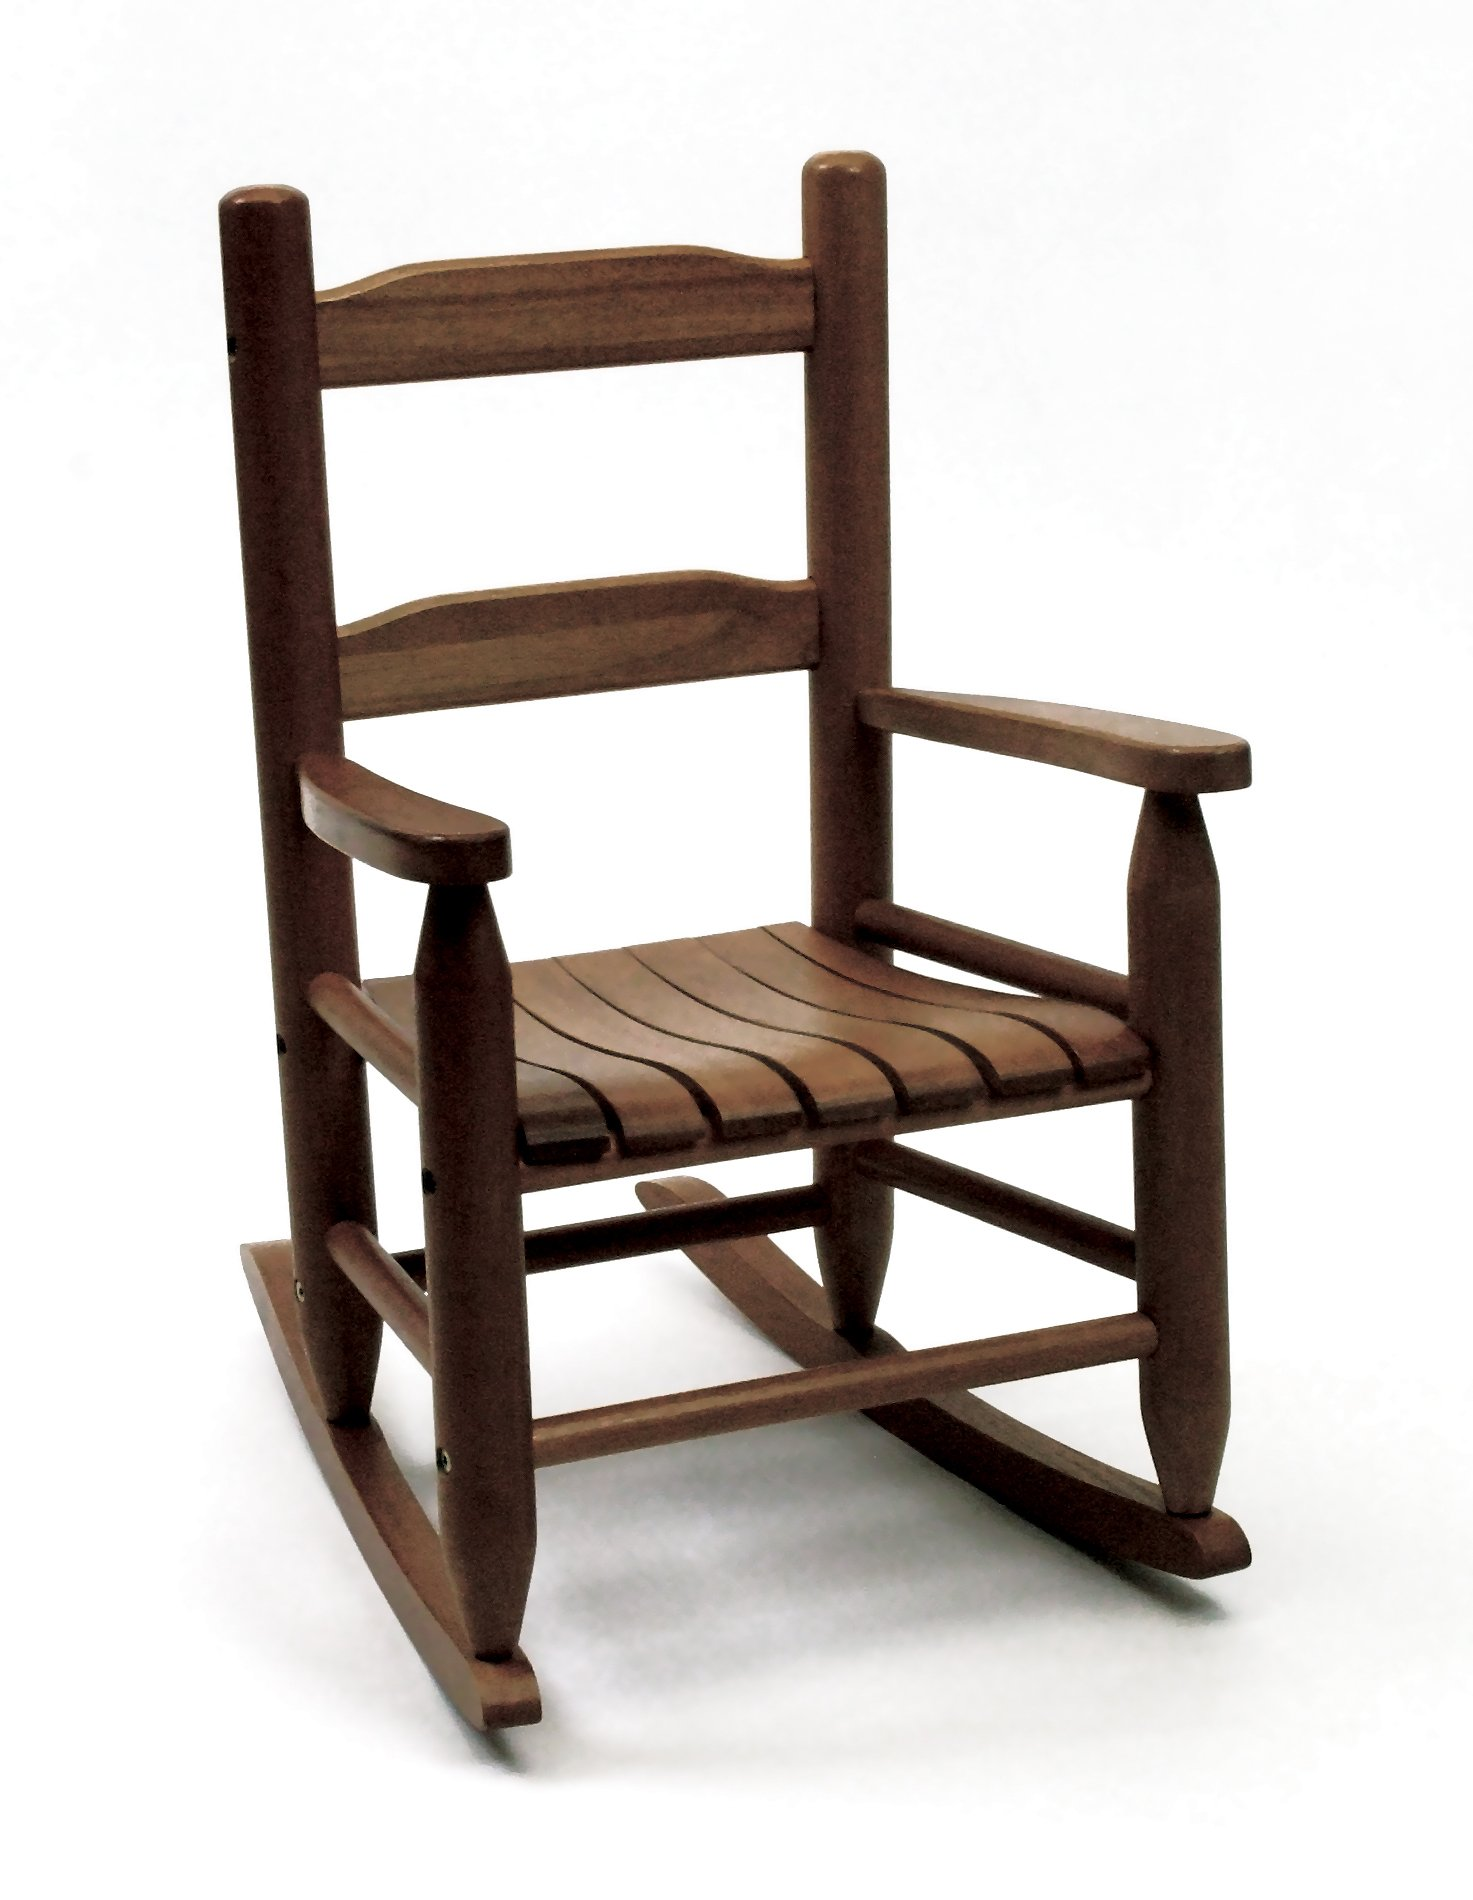 Best Rated in Kids Rocking Chairs & Helpful Customer Reviews